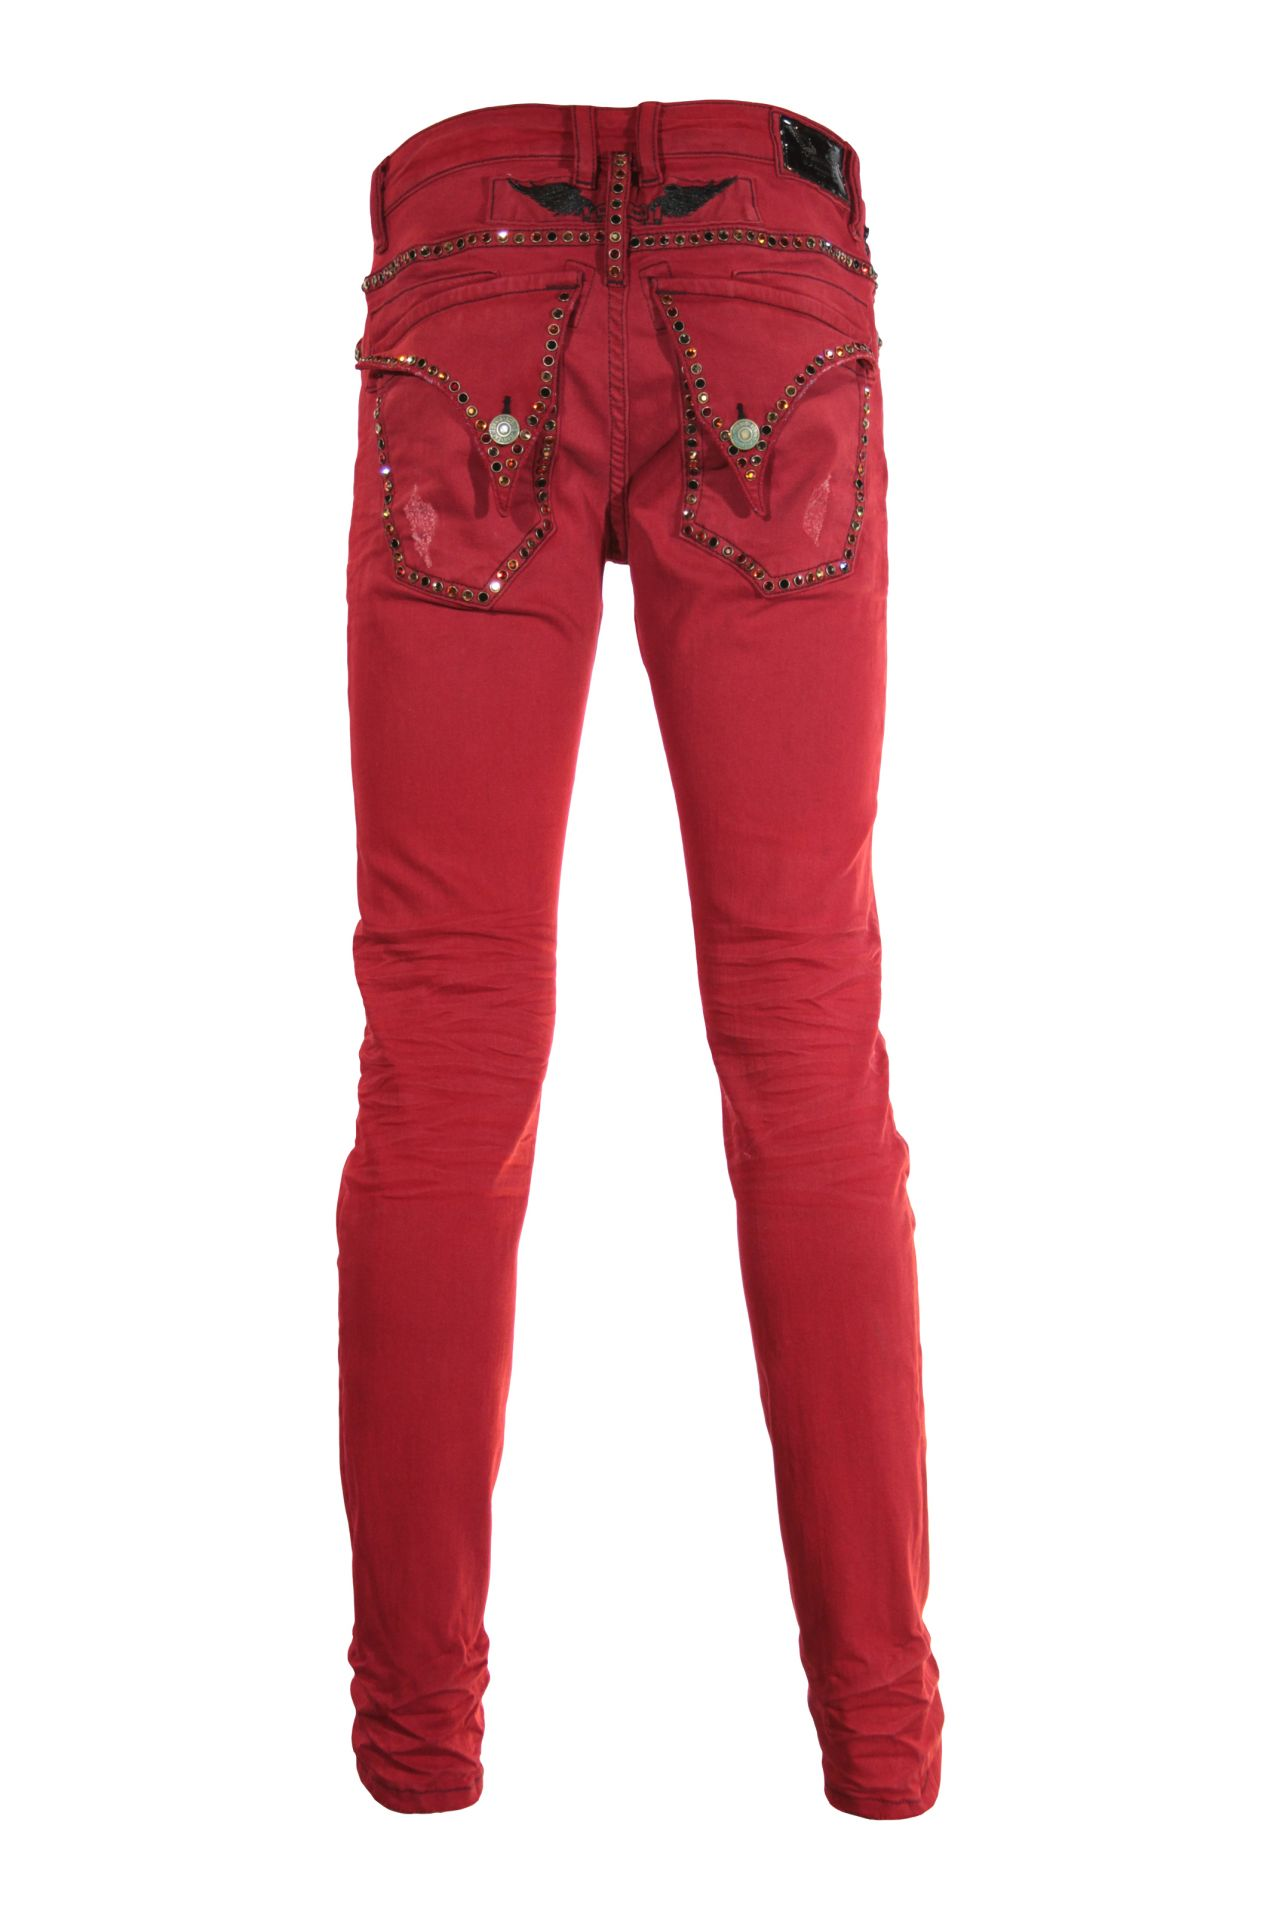 SKINNY LONG FLAP IN F_UP RED WITH STUDS